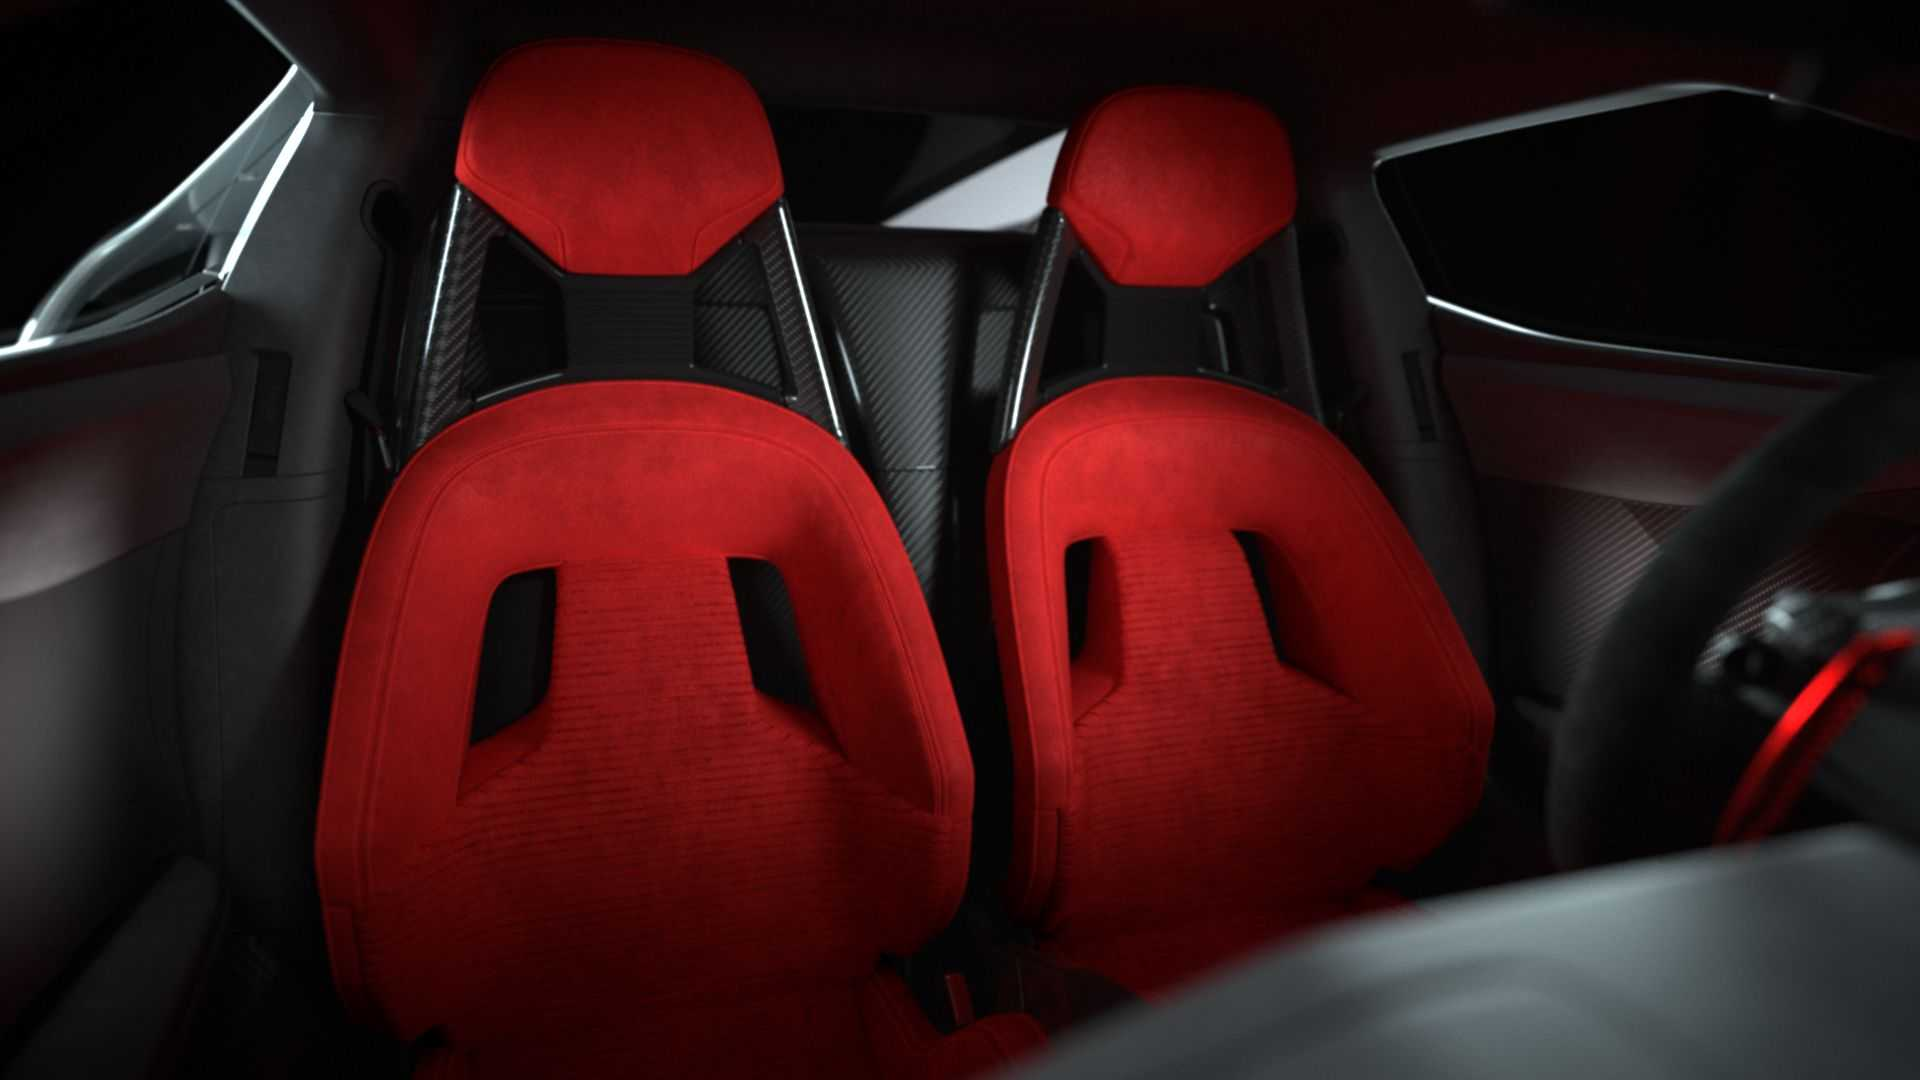 2021-ford-gt-heritage-edition-seats.jpg